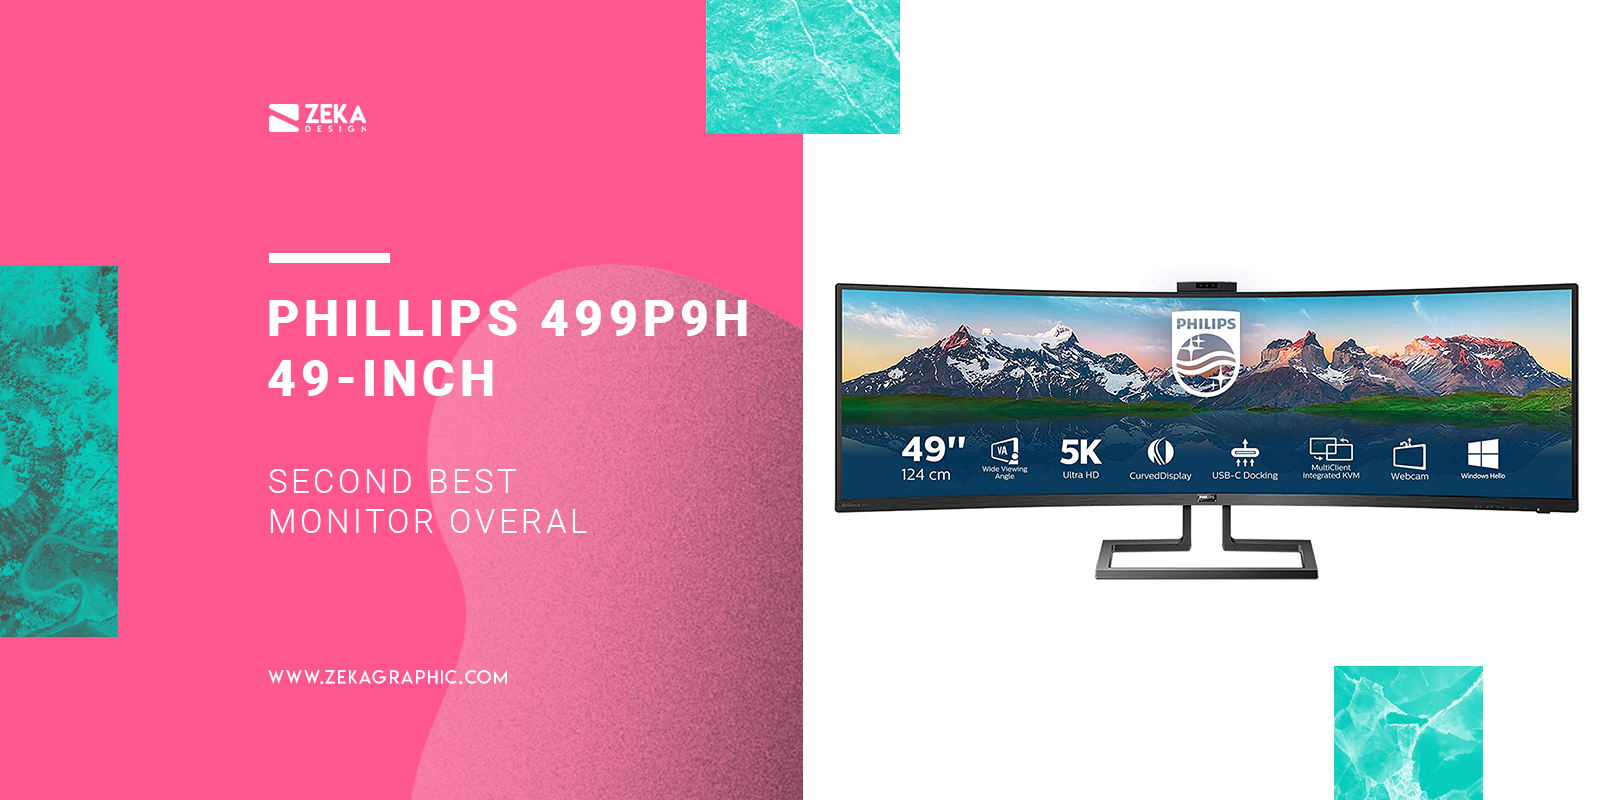 Phillips 499P9H 49-inch SuperWide Curved 5k Monitor for graphic design